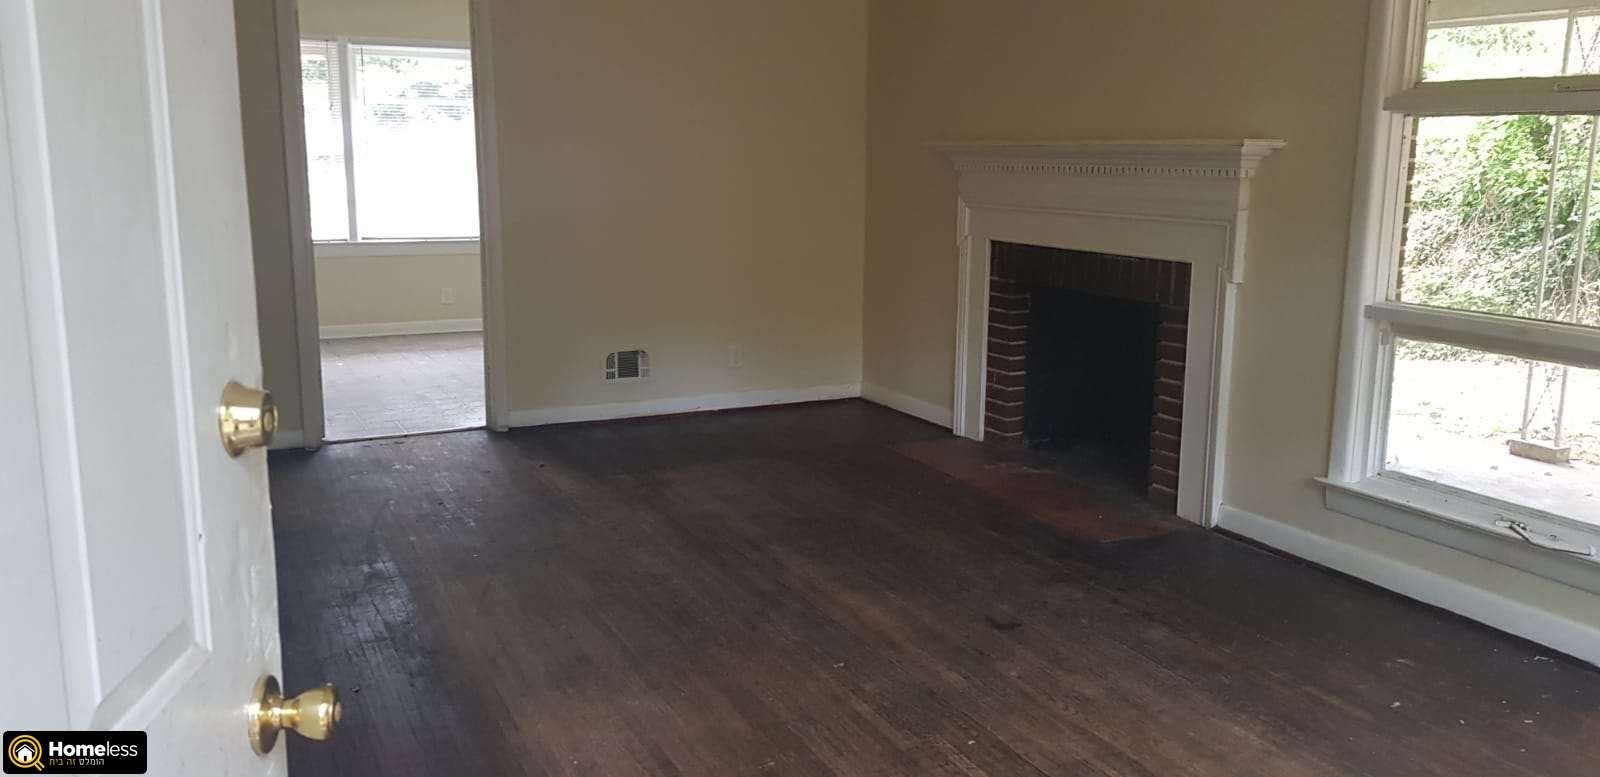 Empty 3 Rooms In United states -  Other 3 חדרים בארצות הברית  - אחר